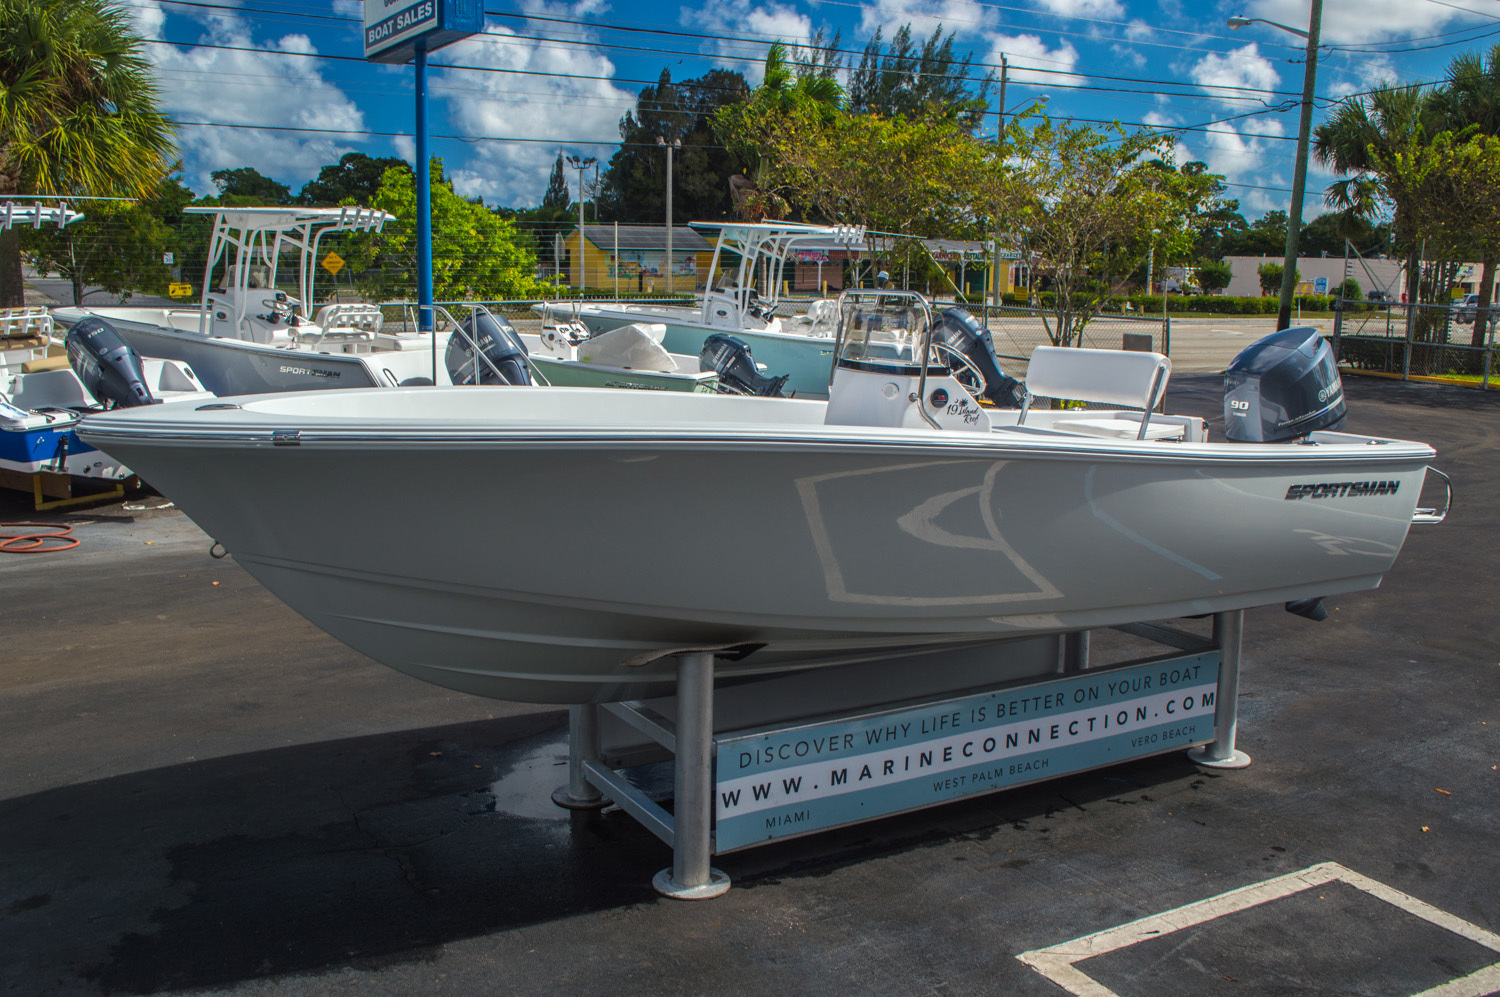 Thumbnail 11 for New 2016 Sportsman 19 Island Reef boat for sale in West Palm Beach, FL